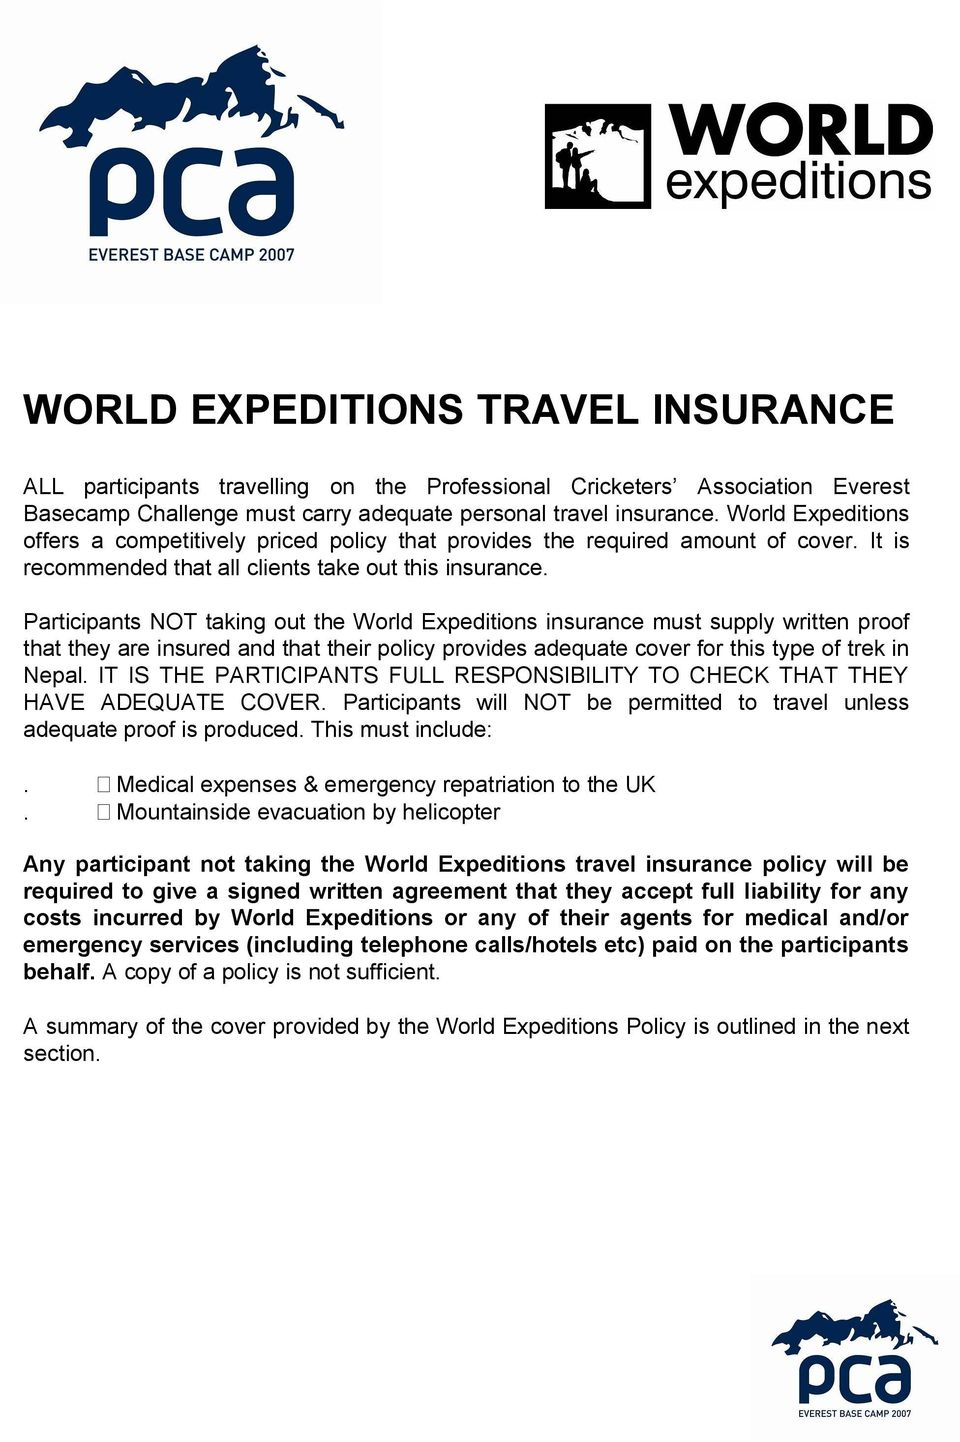 Participants NOT taking out the World Expeditions insurance must supply written proof that they are insured and that their policy provides adequate cover for this type of trek in Nepal.